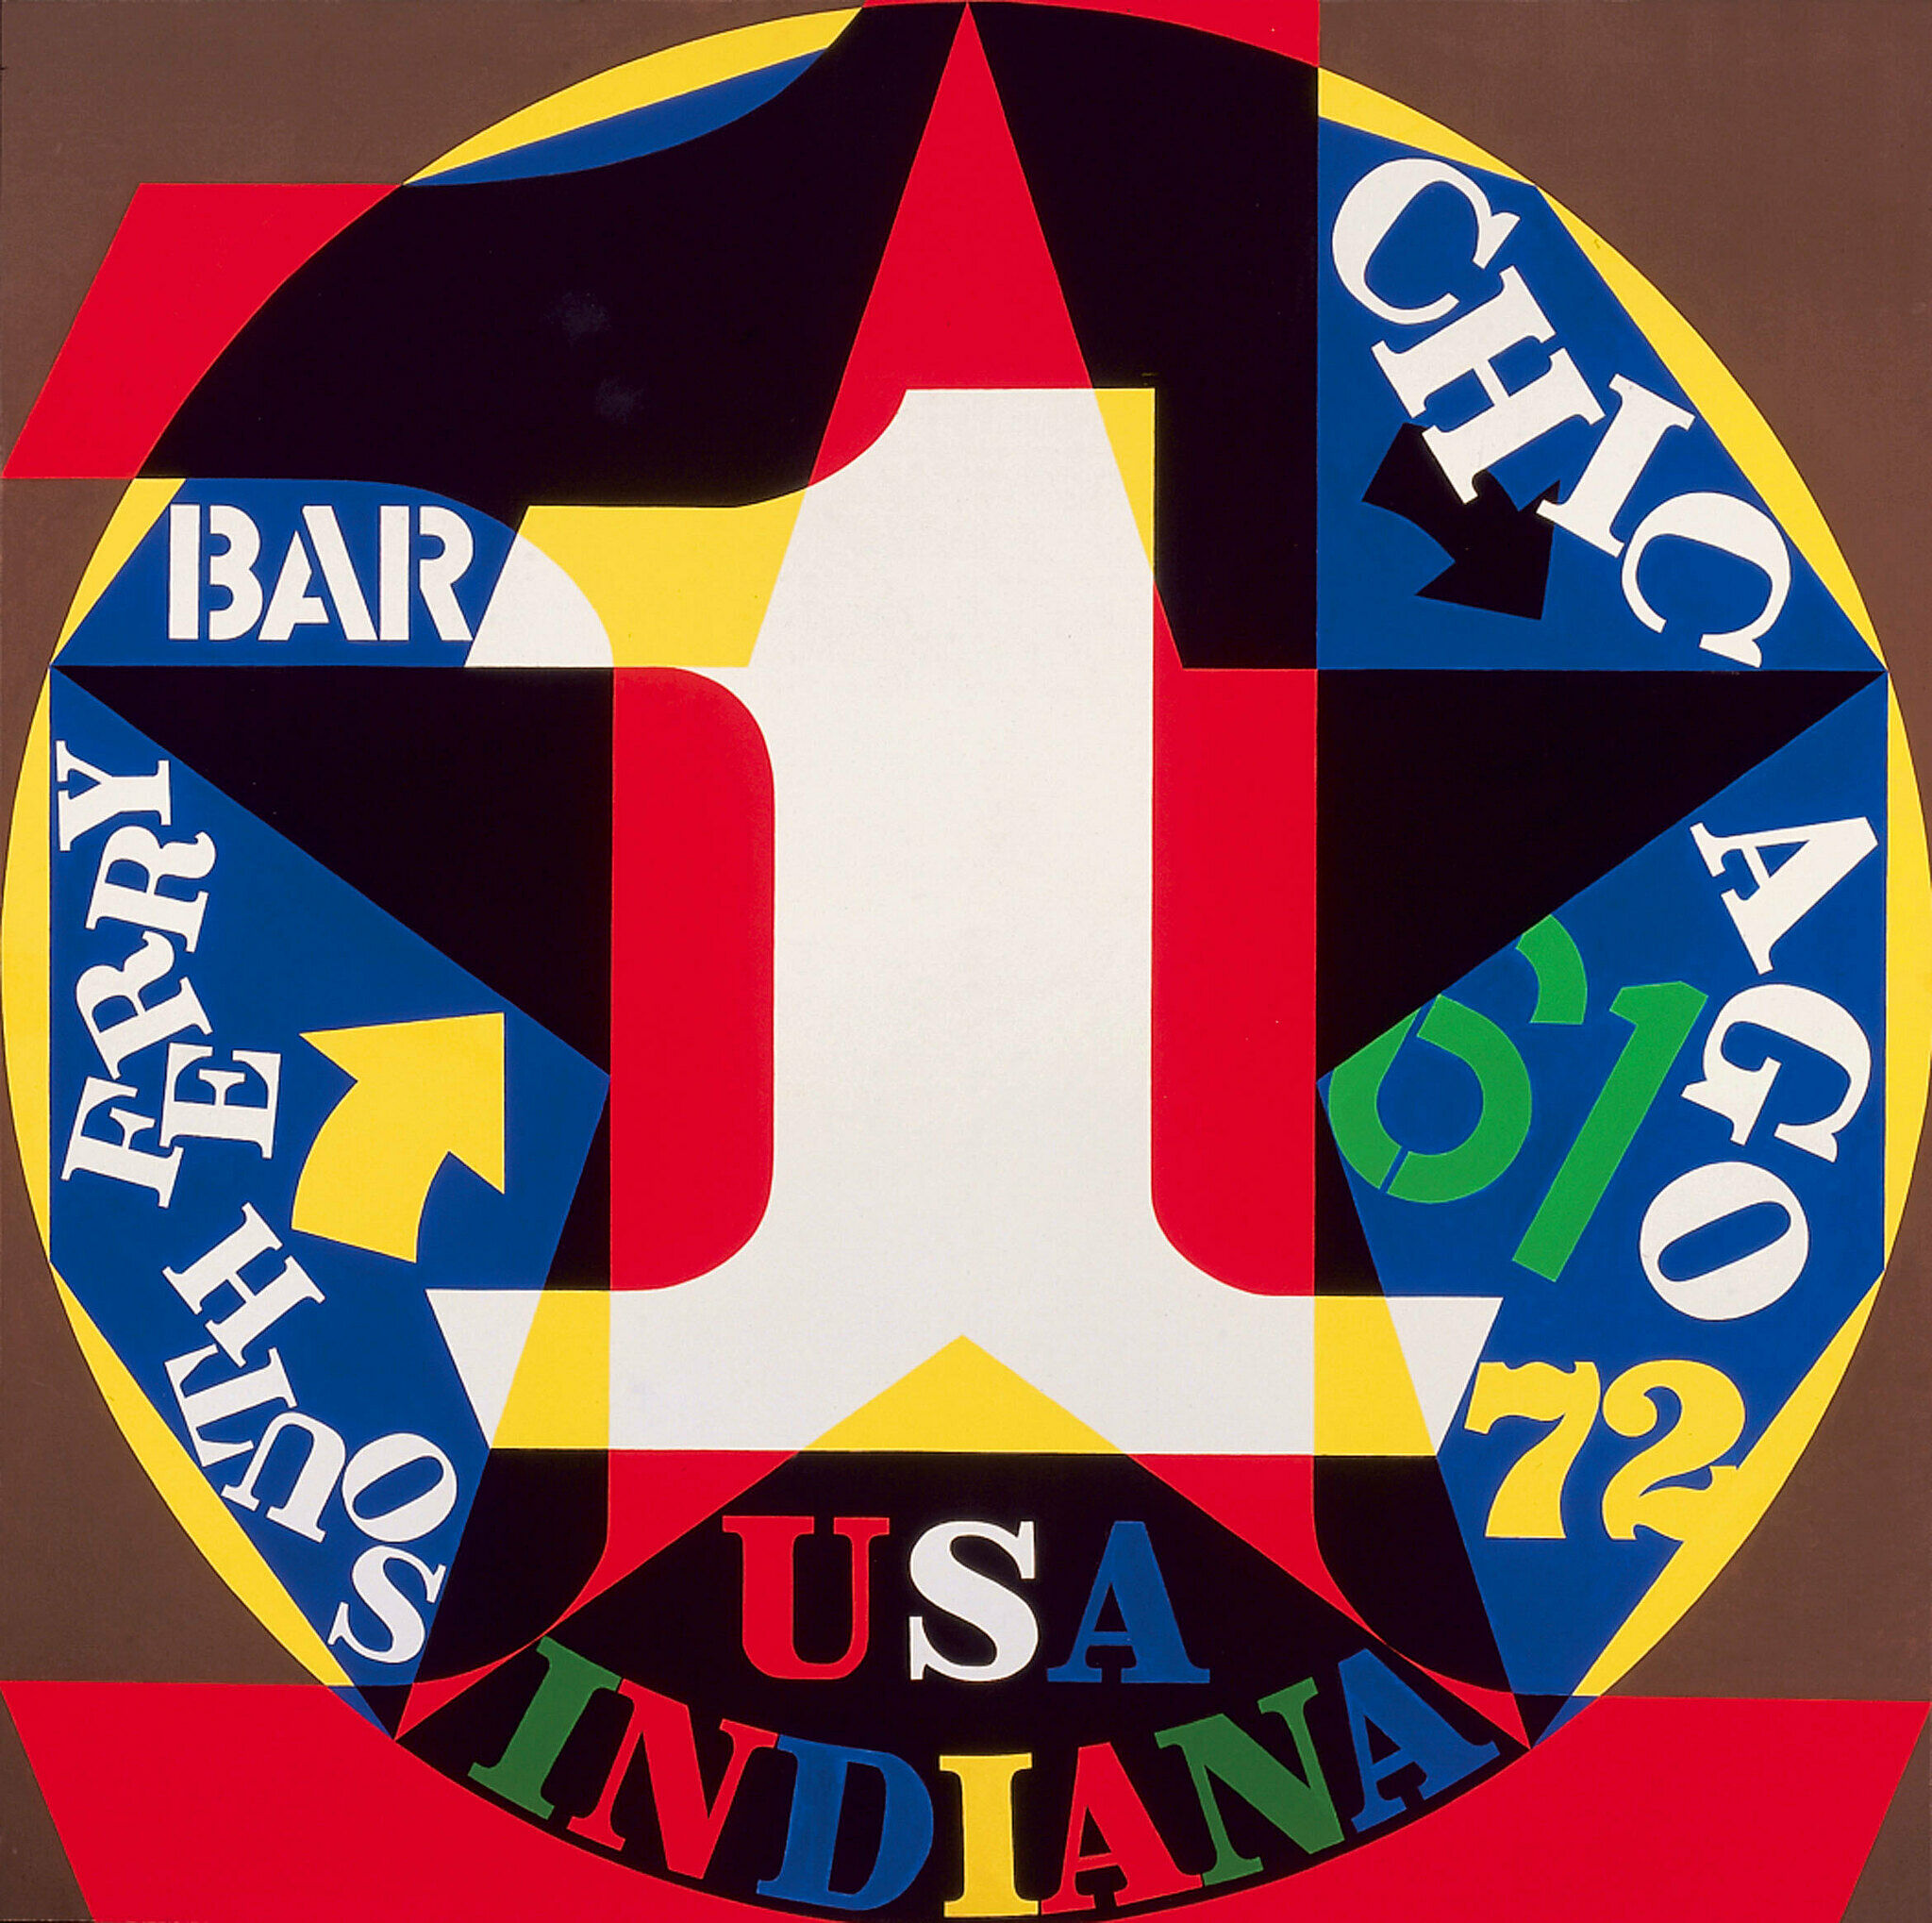 An abstract painting by Robert Indiana with the words Chicago, Bar, and South Ferry.